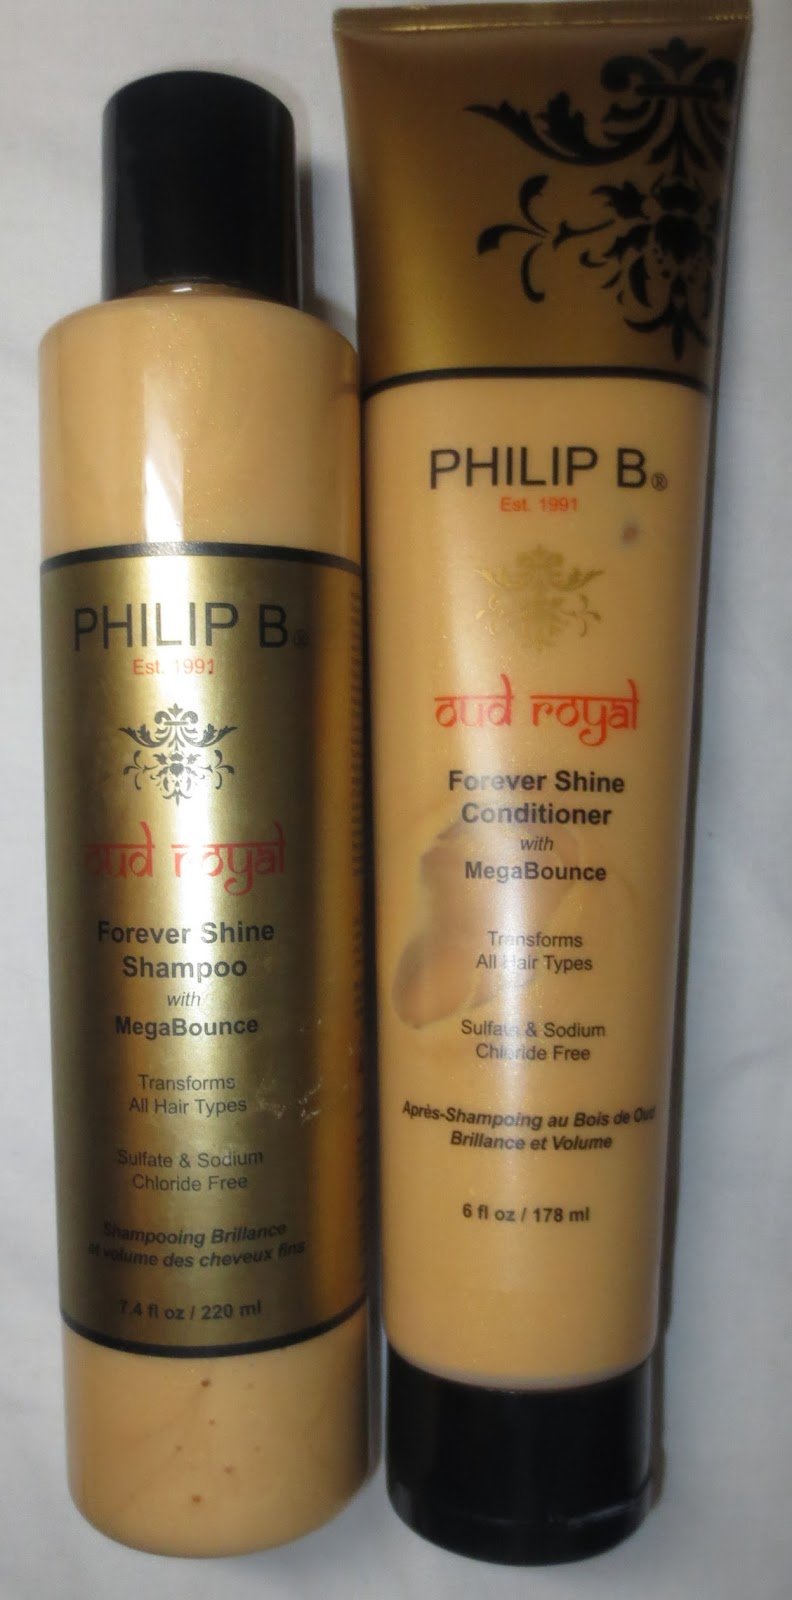 Philip B Oud Royal Forever Shine Shampoo & Conditioner